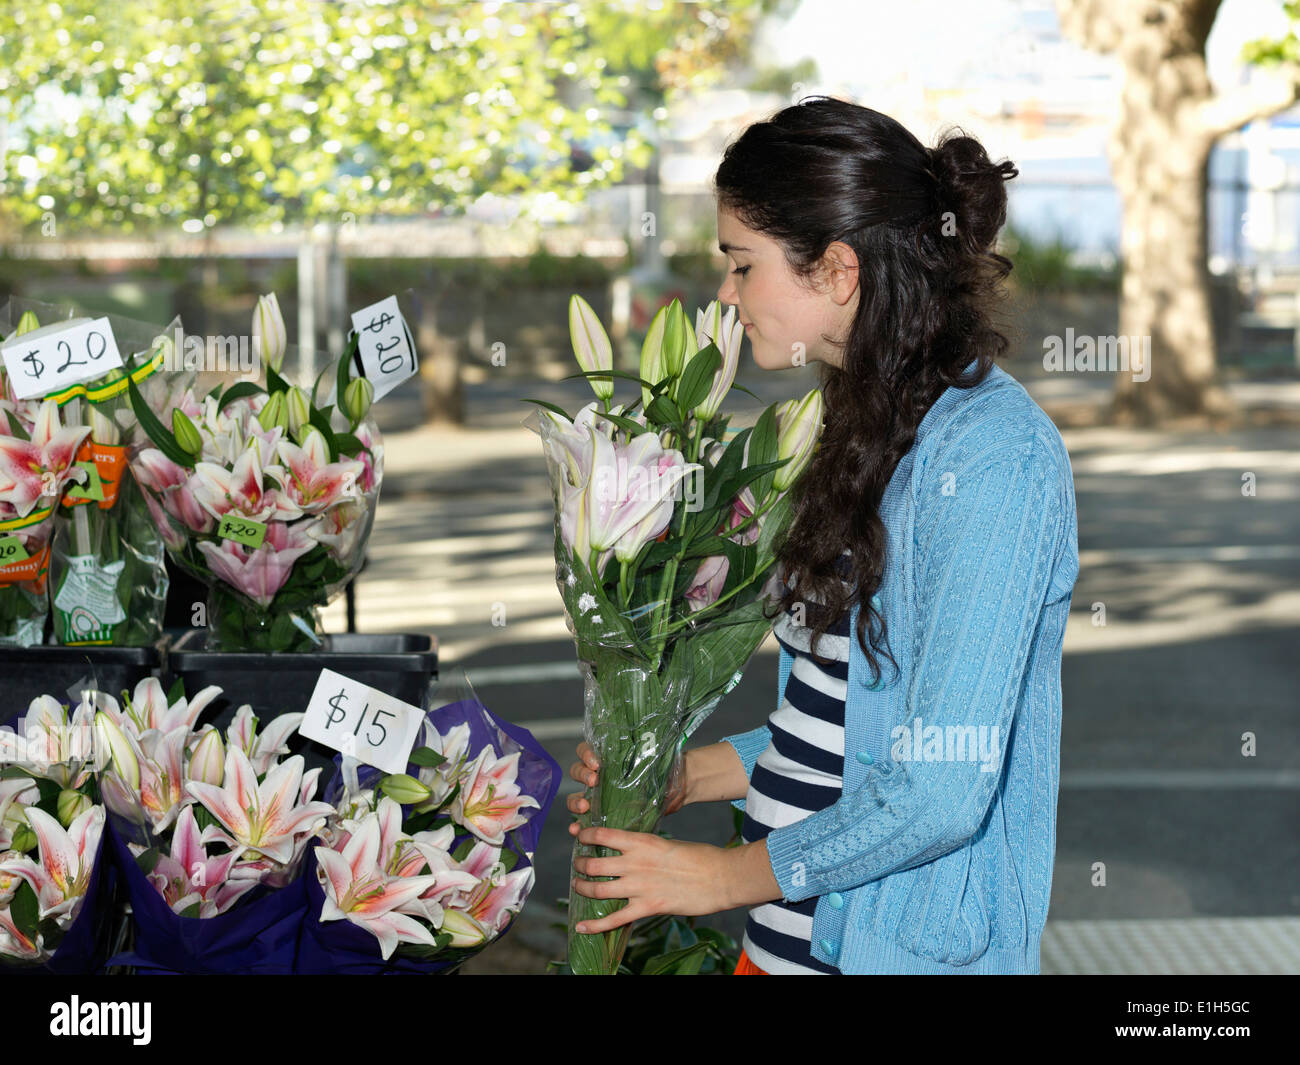 Young woman smelling cut flowers on street - Stock Image